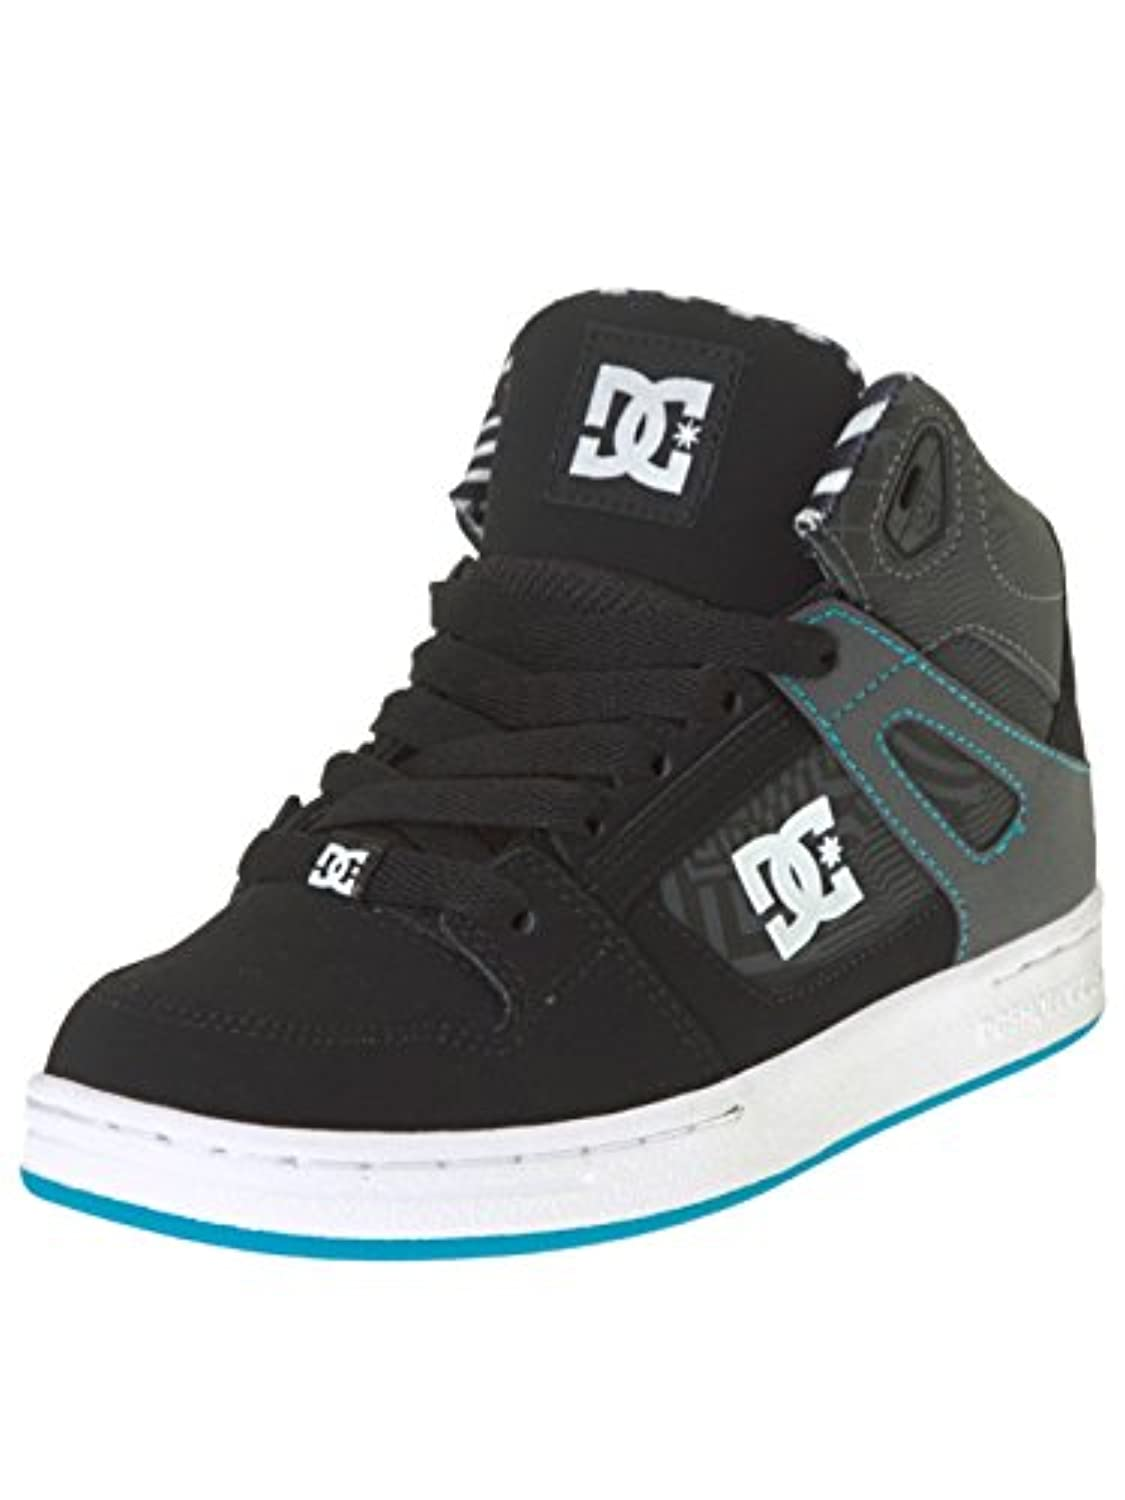 DC Rebound Kb, Boys' Sneakers, Black (Black / White / Blue), 3 UK (35 EU)